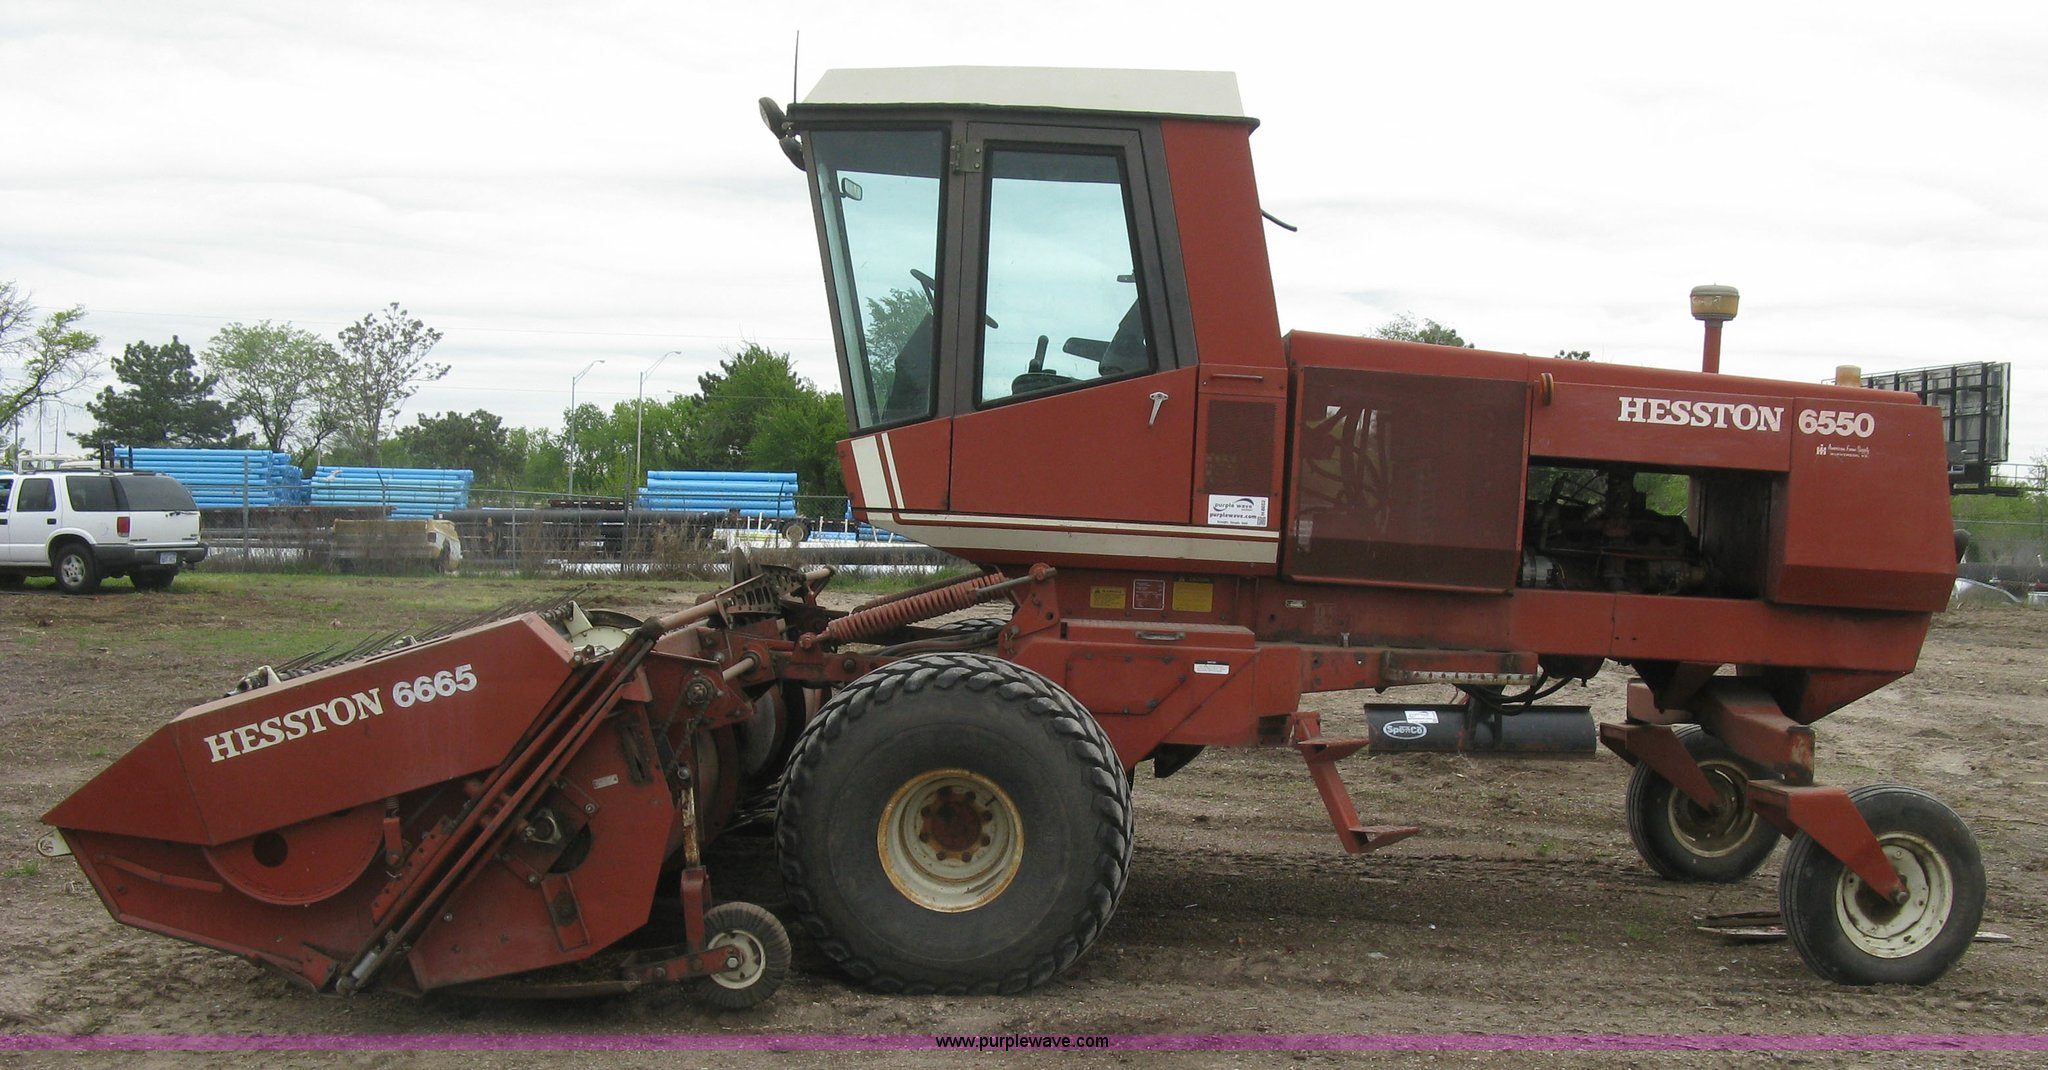 ... Hesston 6550 self-propelled windrower Full size in new window ...